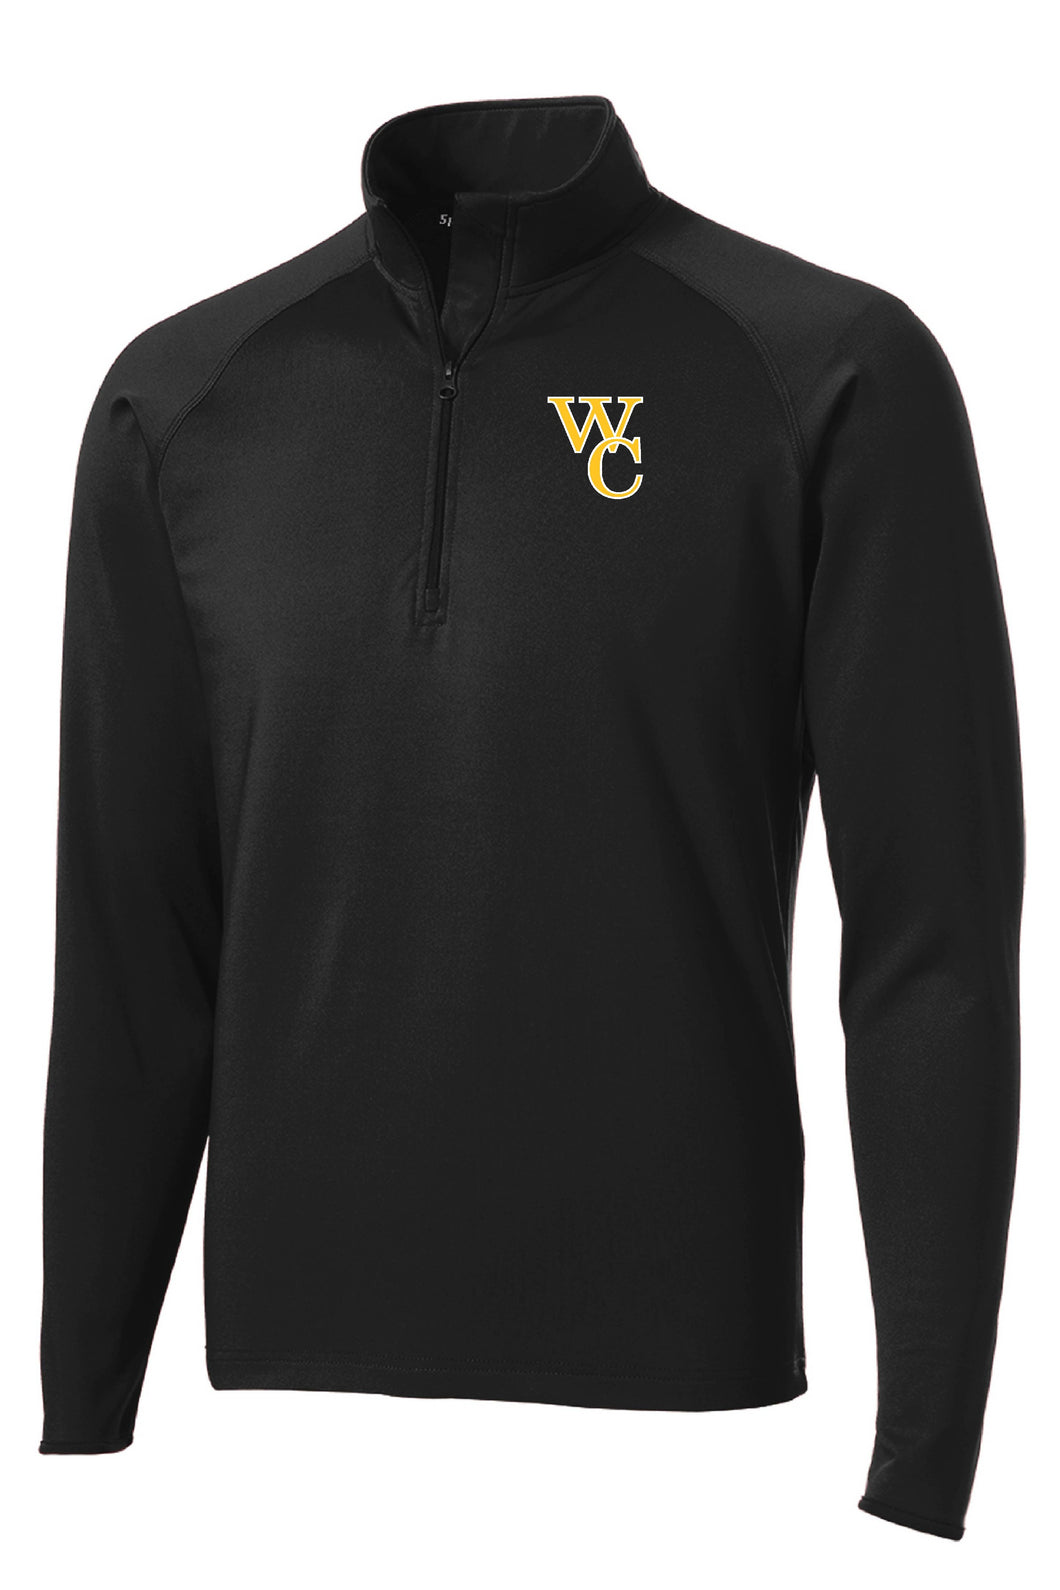 Woodford Embroidered 1/2-Zip Lightweight Pullover